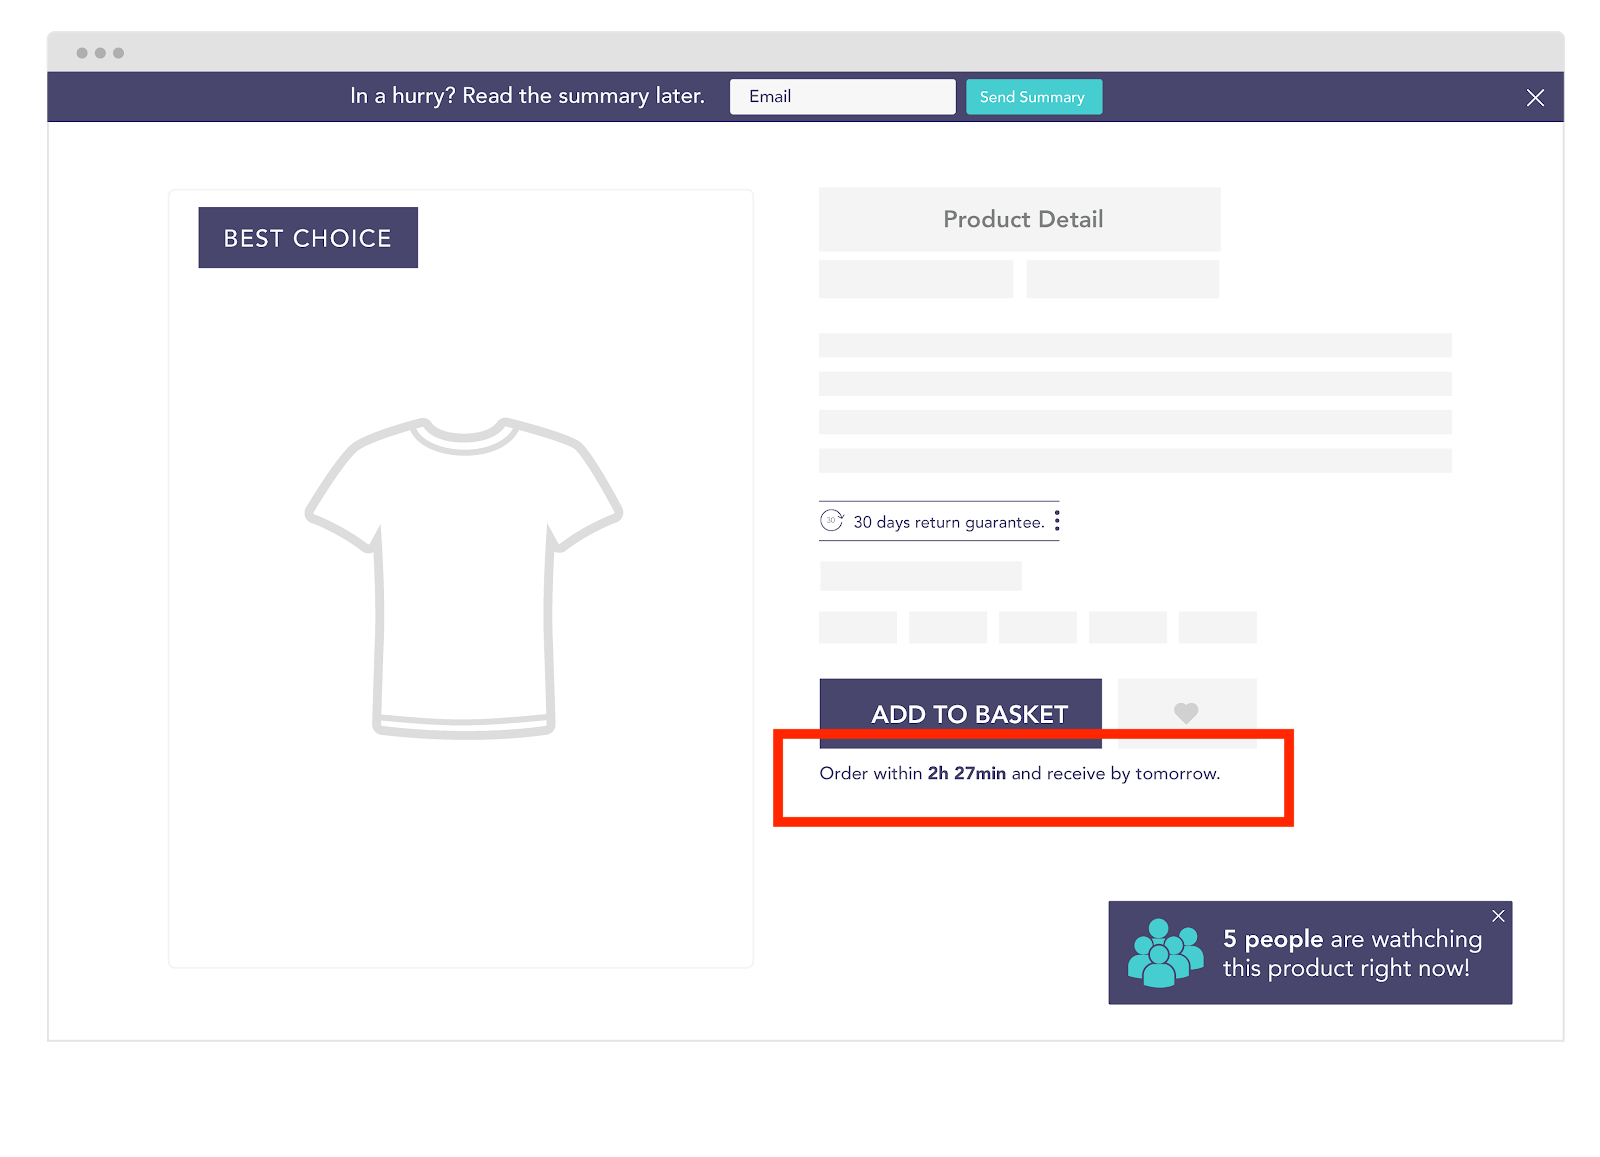 conversion funnel optimization PDP urgency